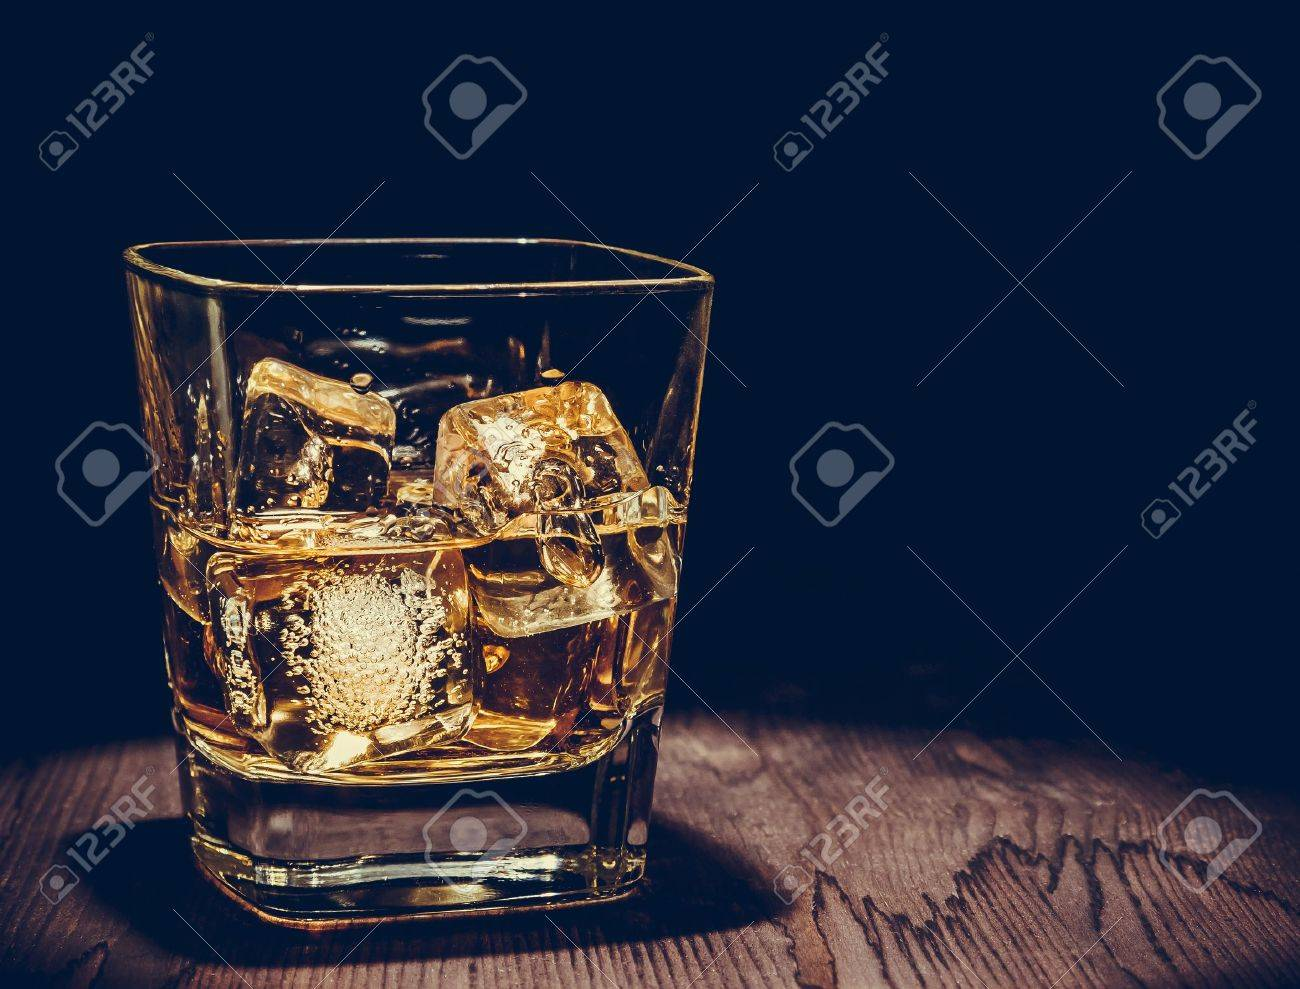 glass of whiskey with ice cubes on wood table, warm atmosphere, time of relax with whisky with space for text - 46673642